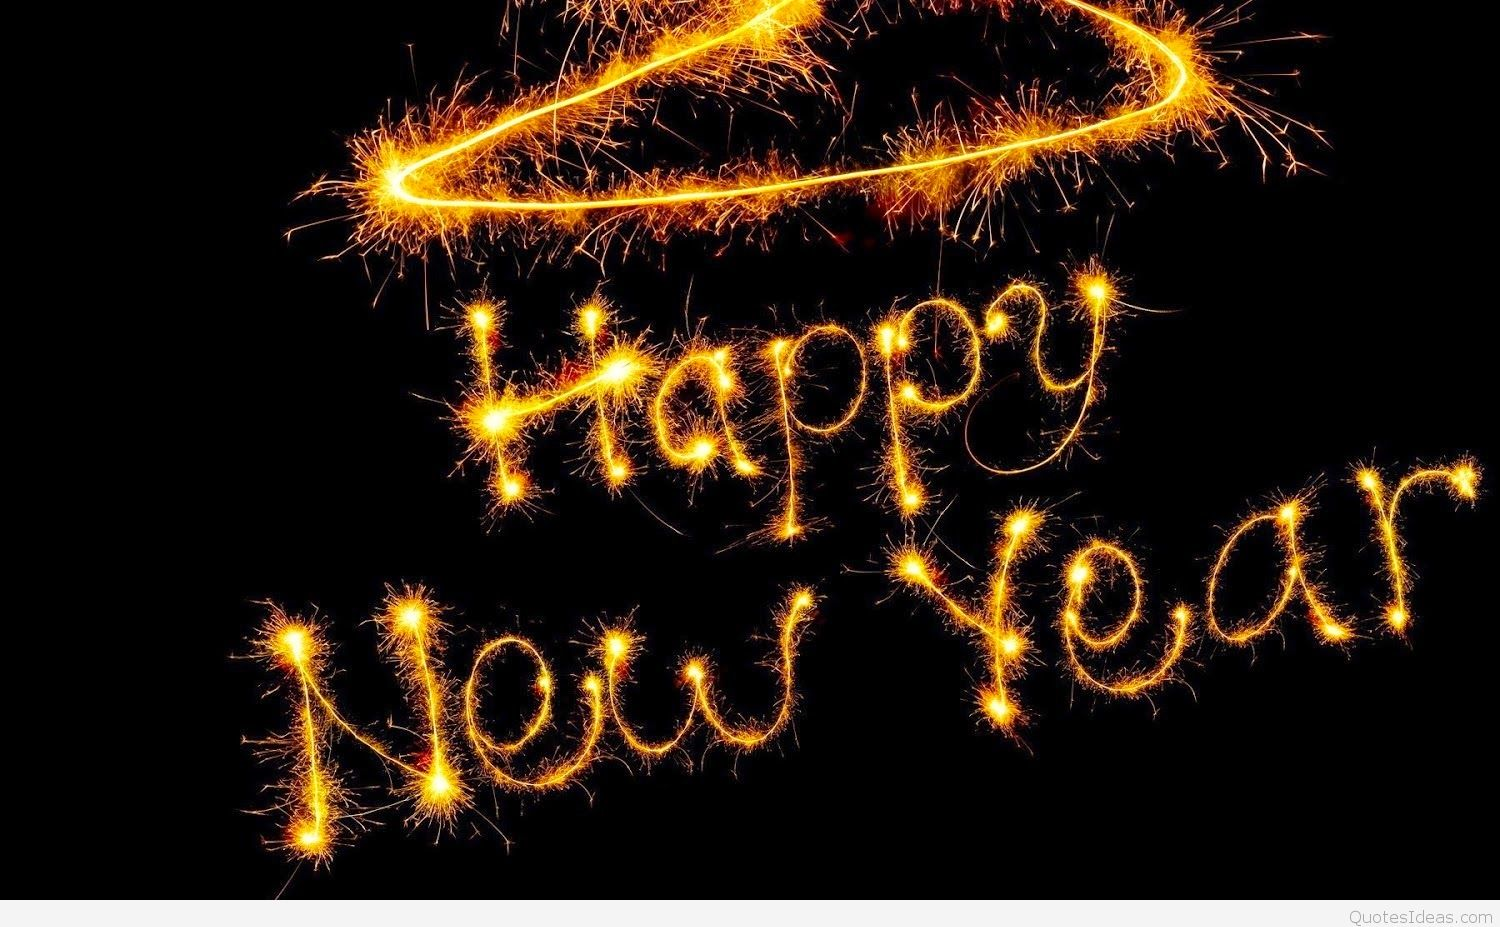 new year celebration on 1 january inspirational greeting card messages